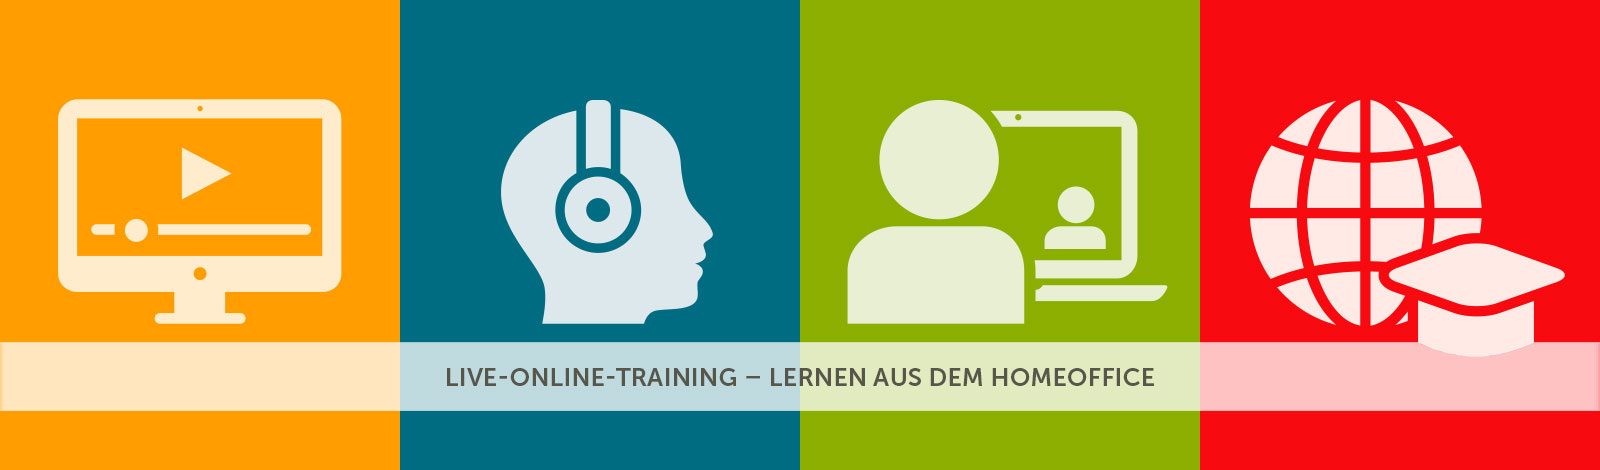 Live-Online-Training